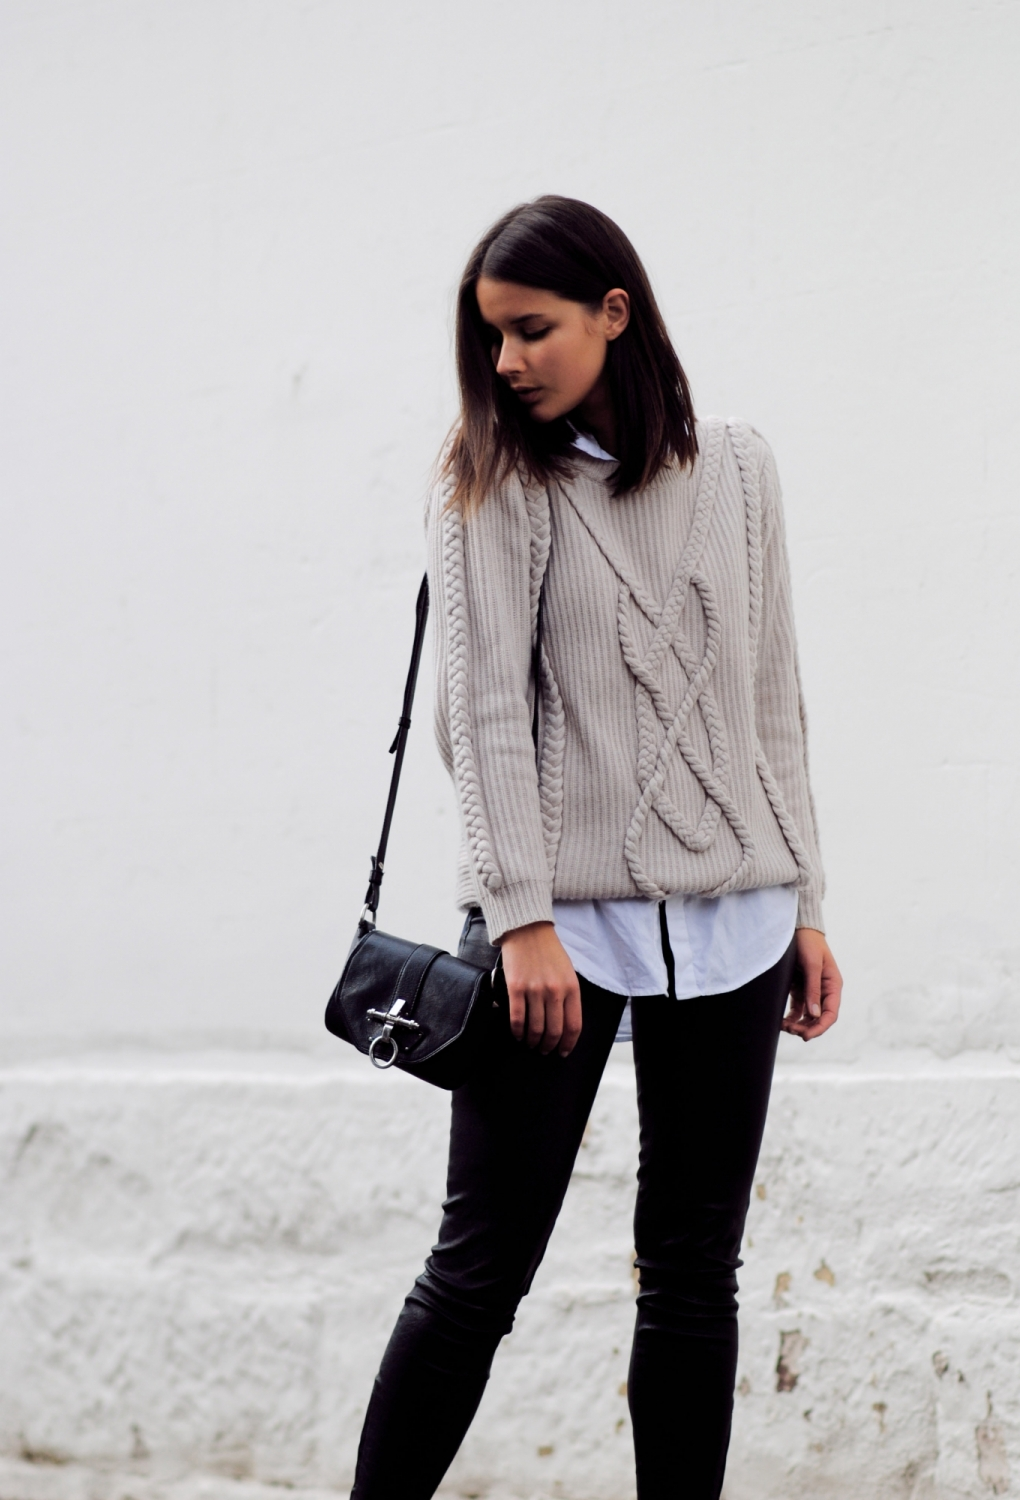 harper and harley_cable knit_nude_leather_blogger_8